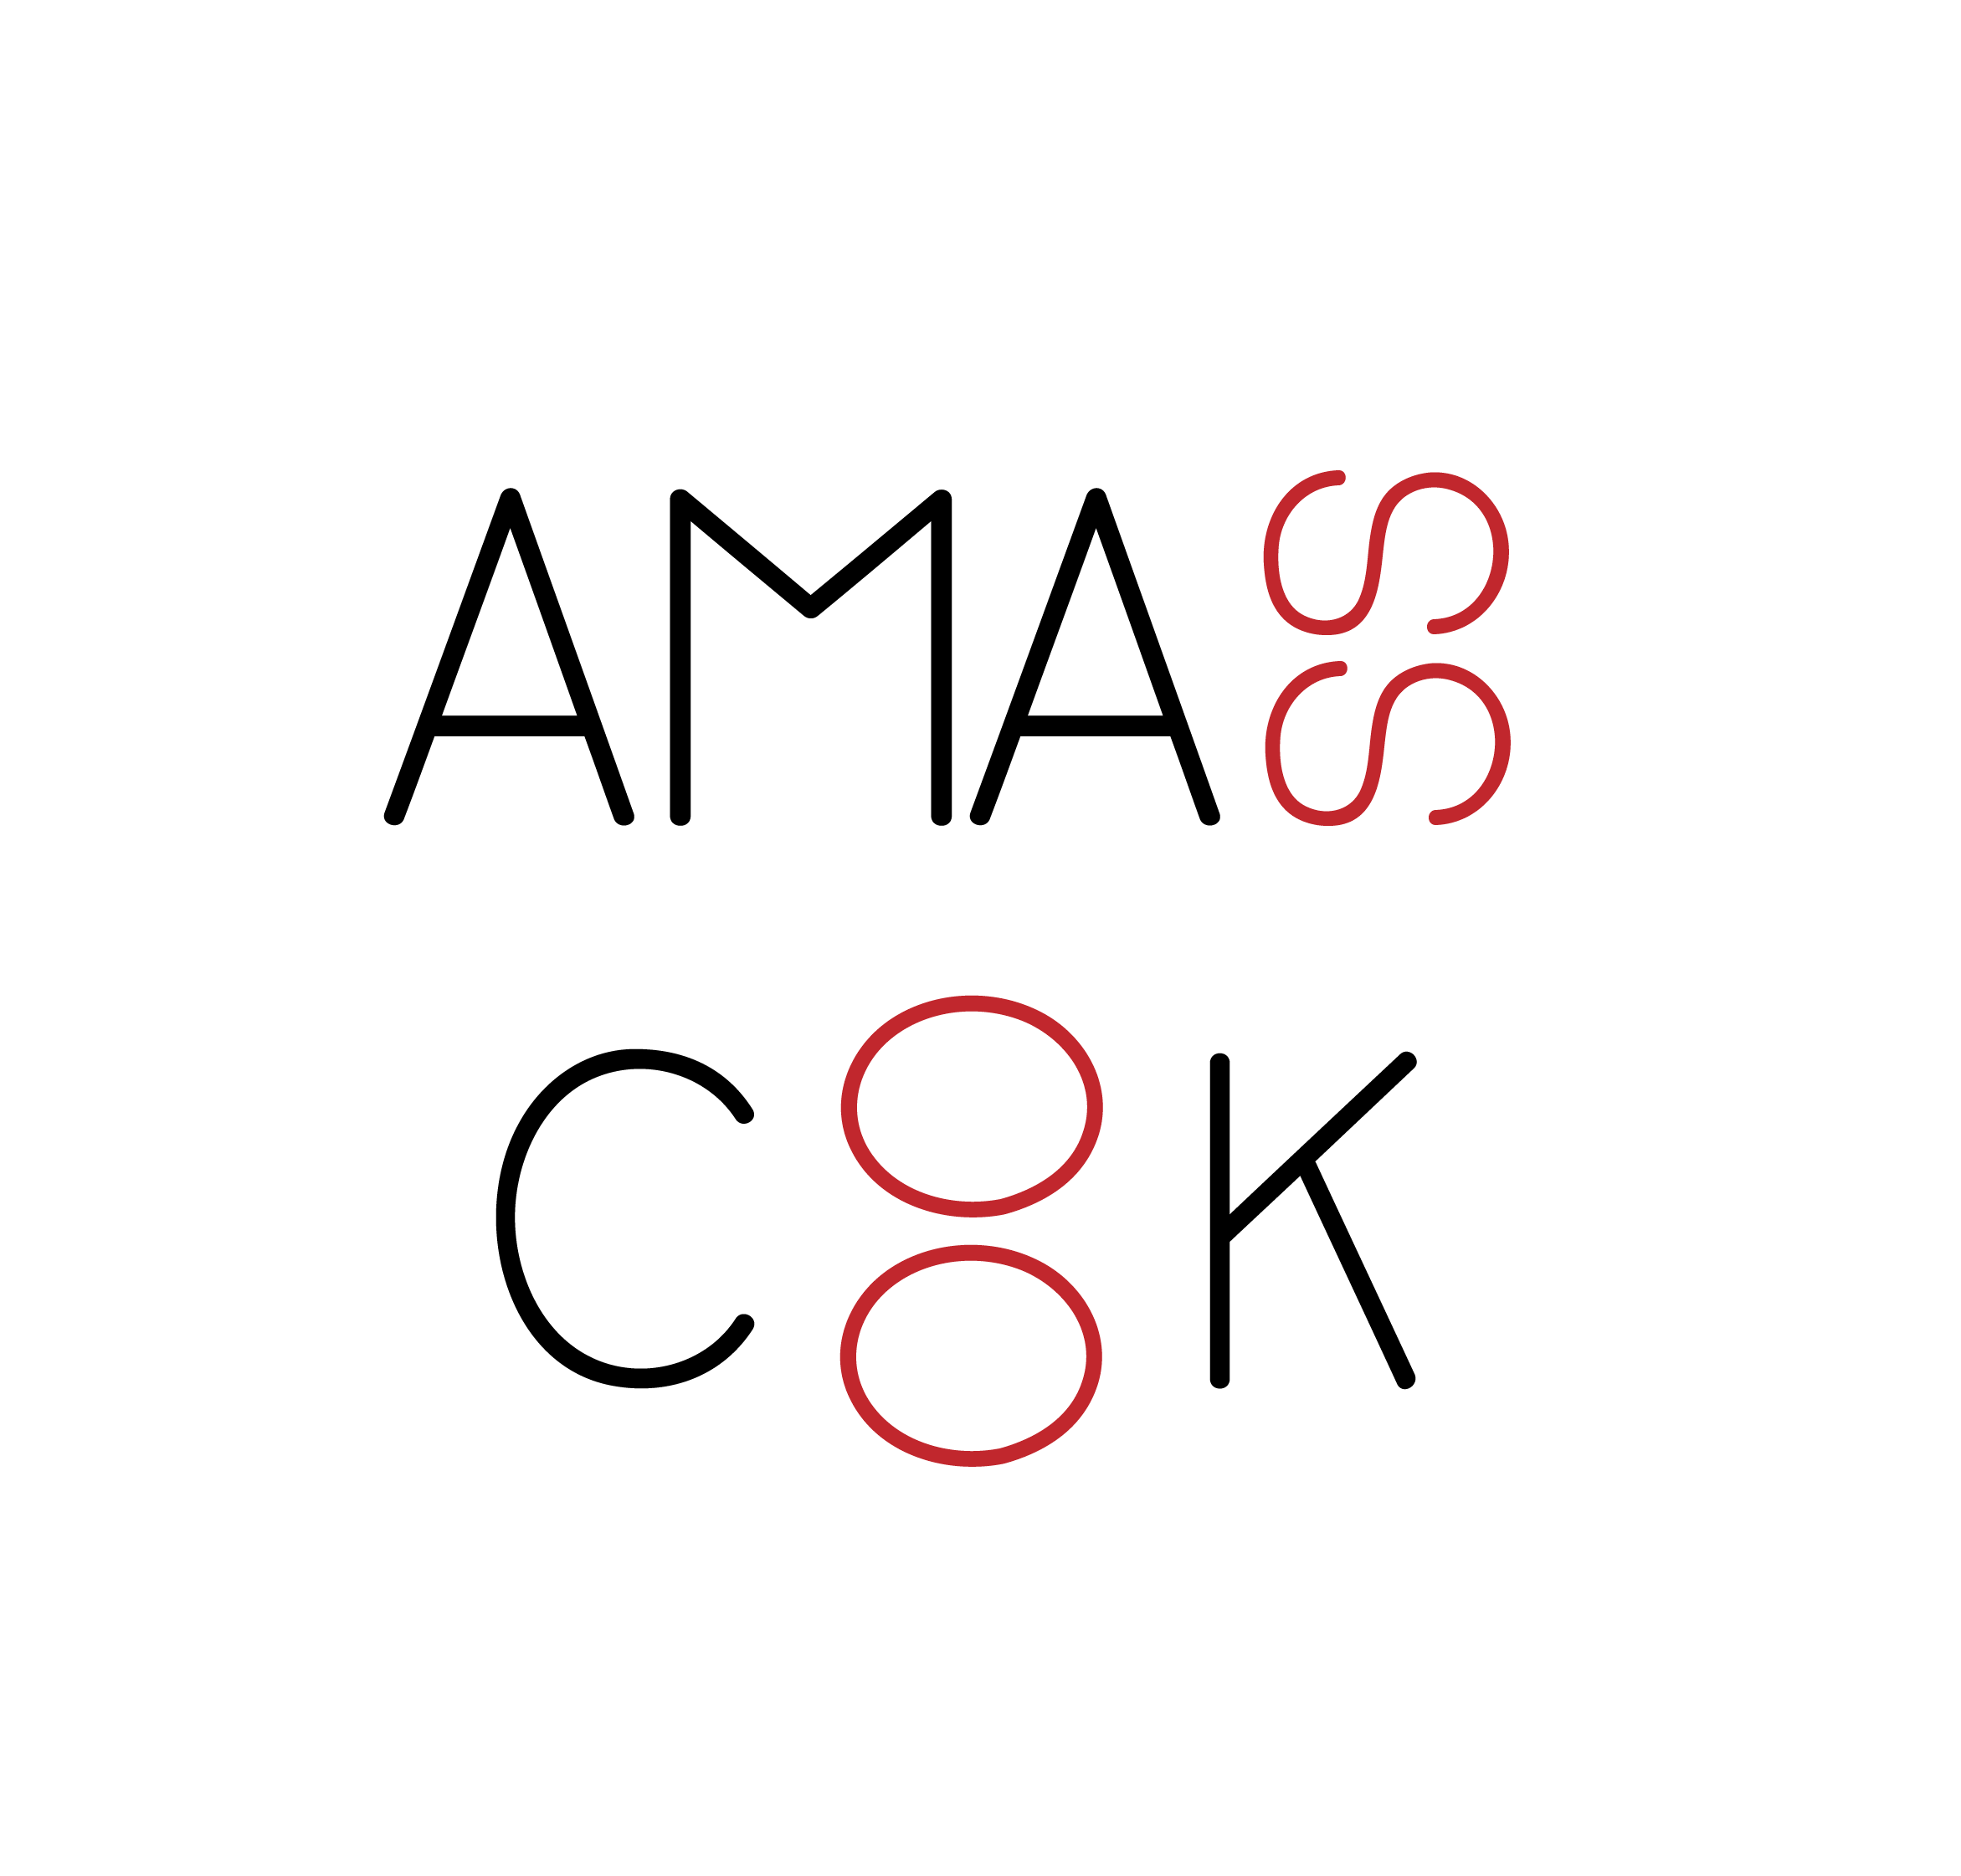 Amass. Cook. A tale about food and our hometown Porto, Portugal